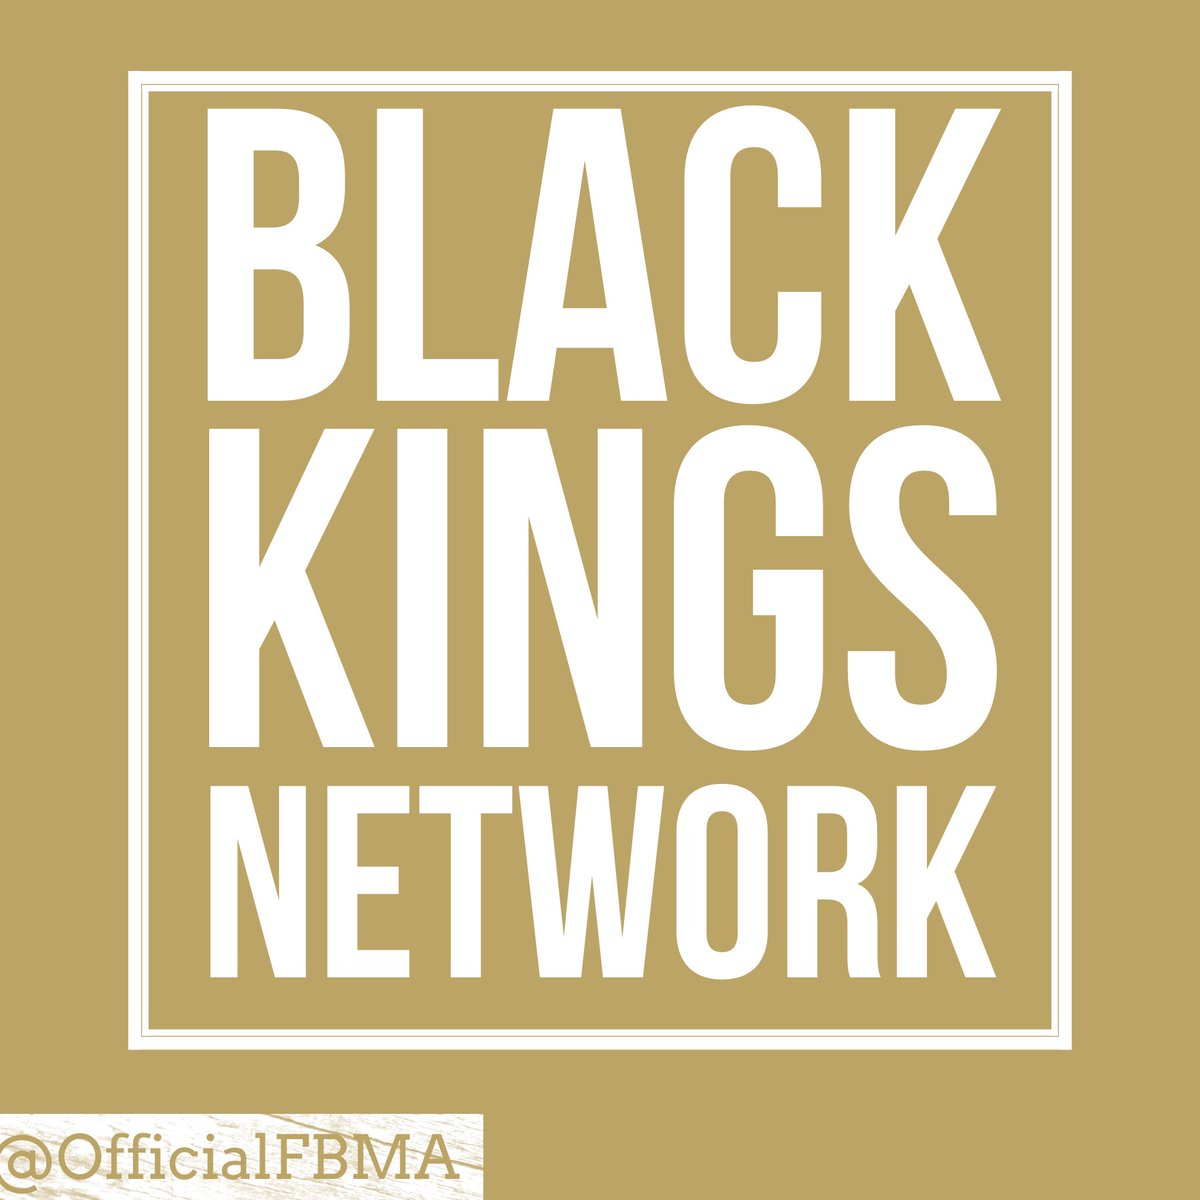 Today we want you to @ at least 3 businessmen and watch Kings network into something great ✊🏾 #BlackKingsNetwork #Collaboration